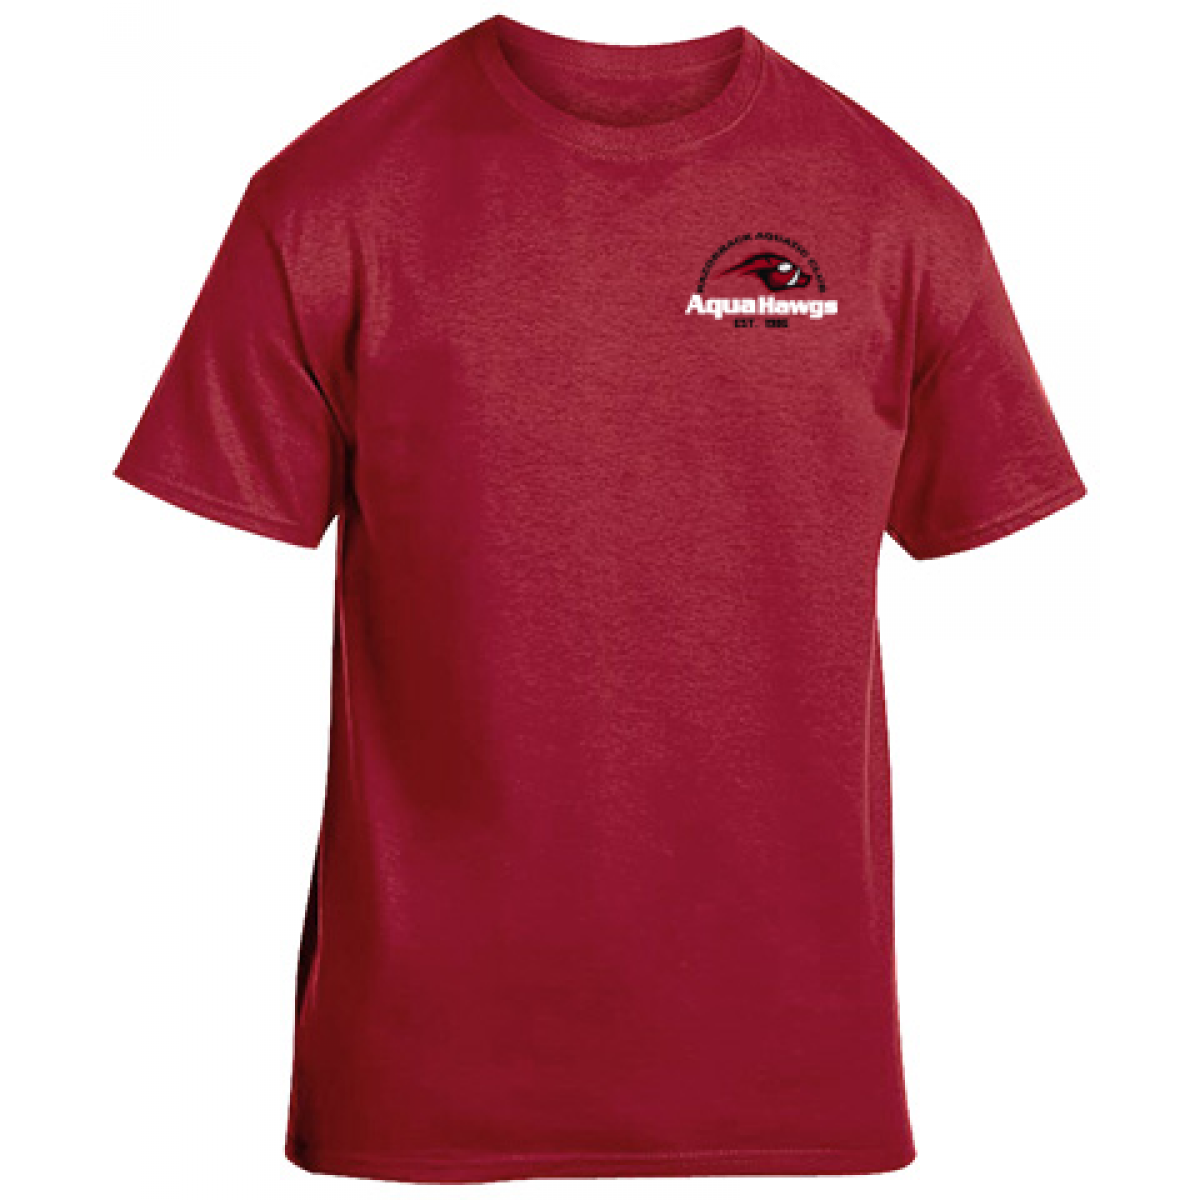 Gildan Cotton Short Sleeve T-Shirt - Cardinal Red-Cardinal Red-M